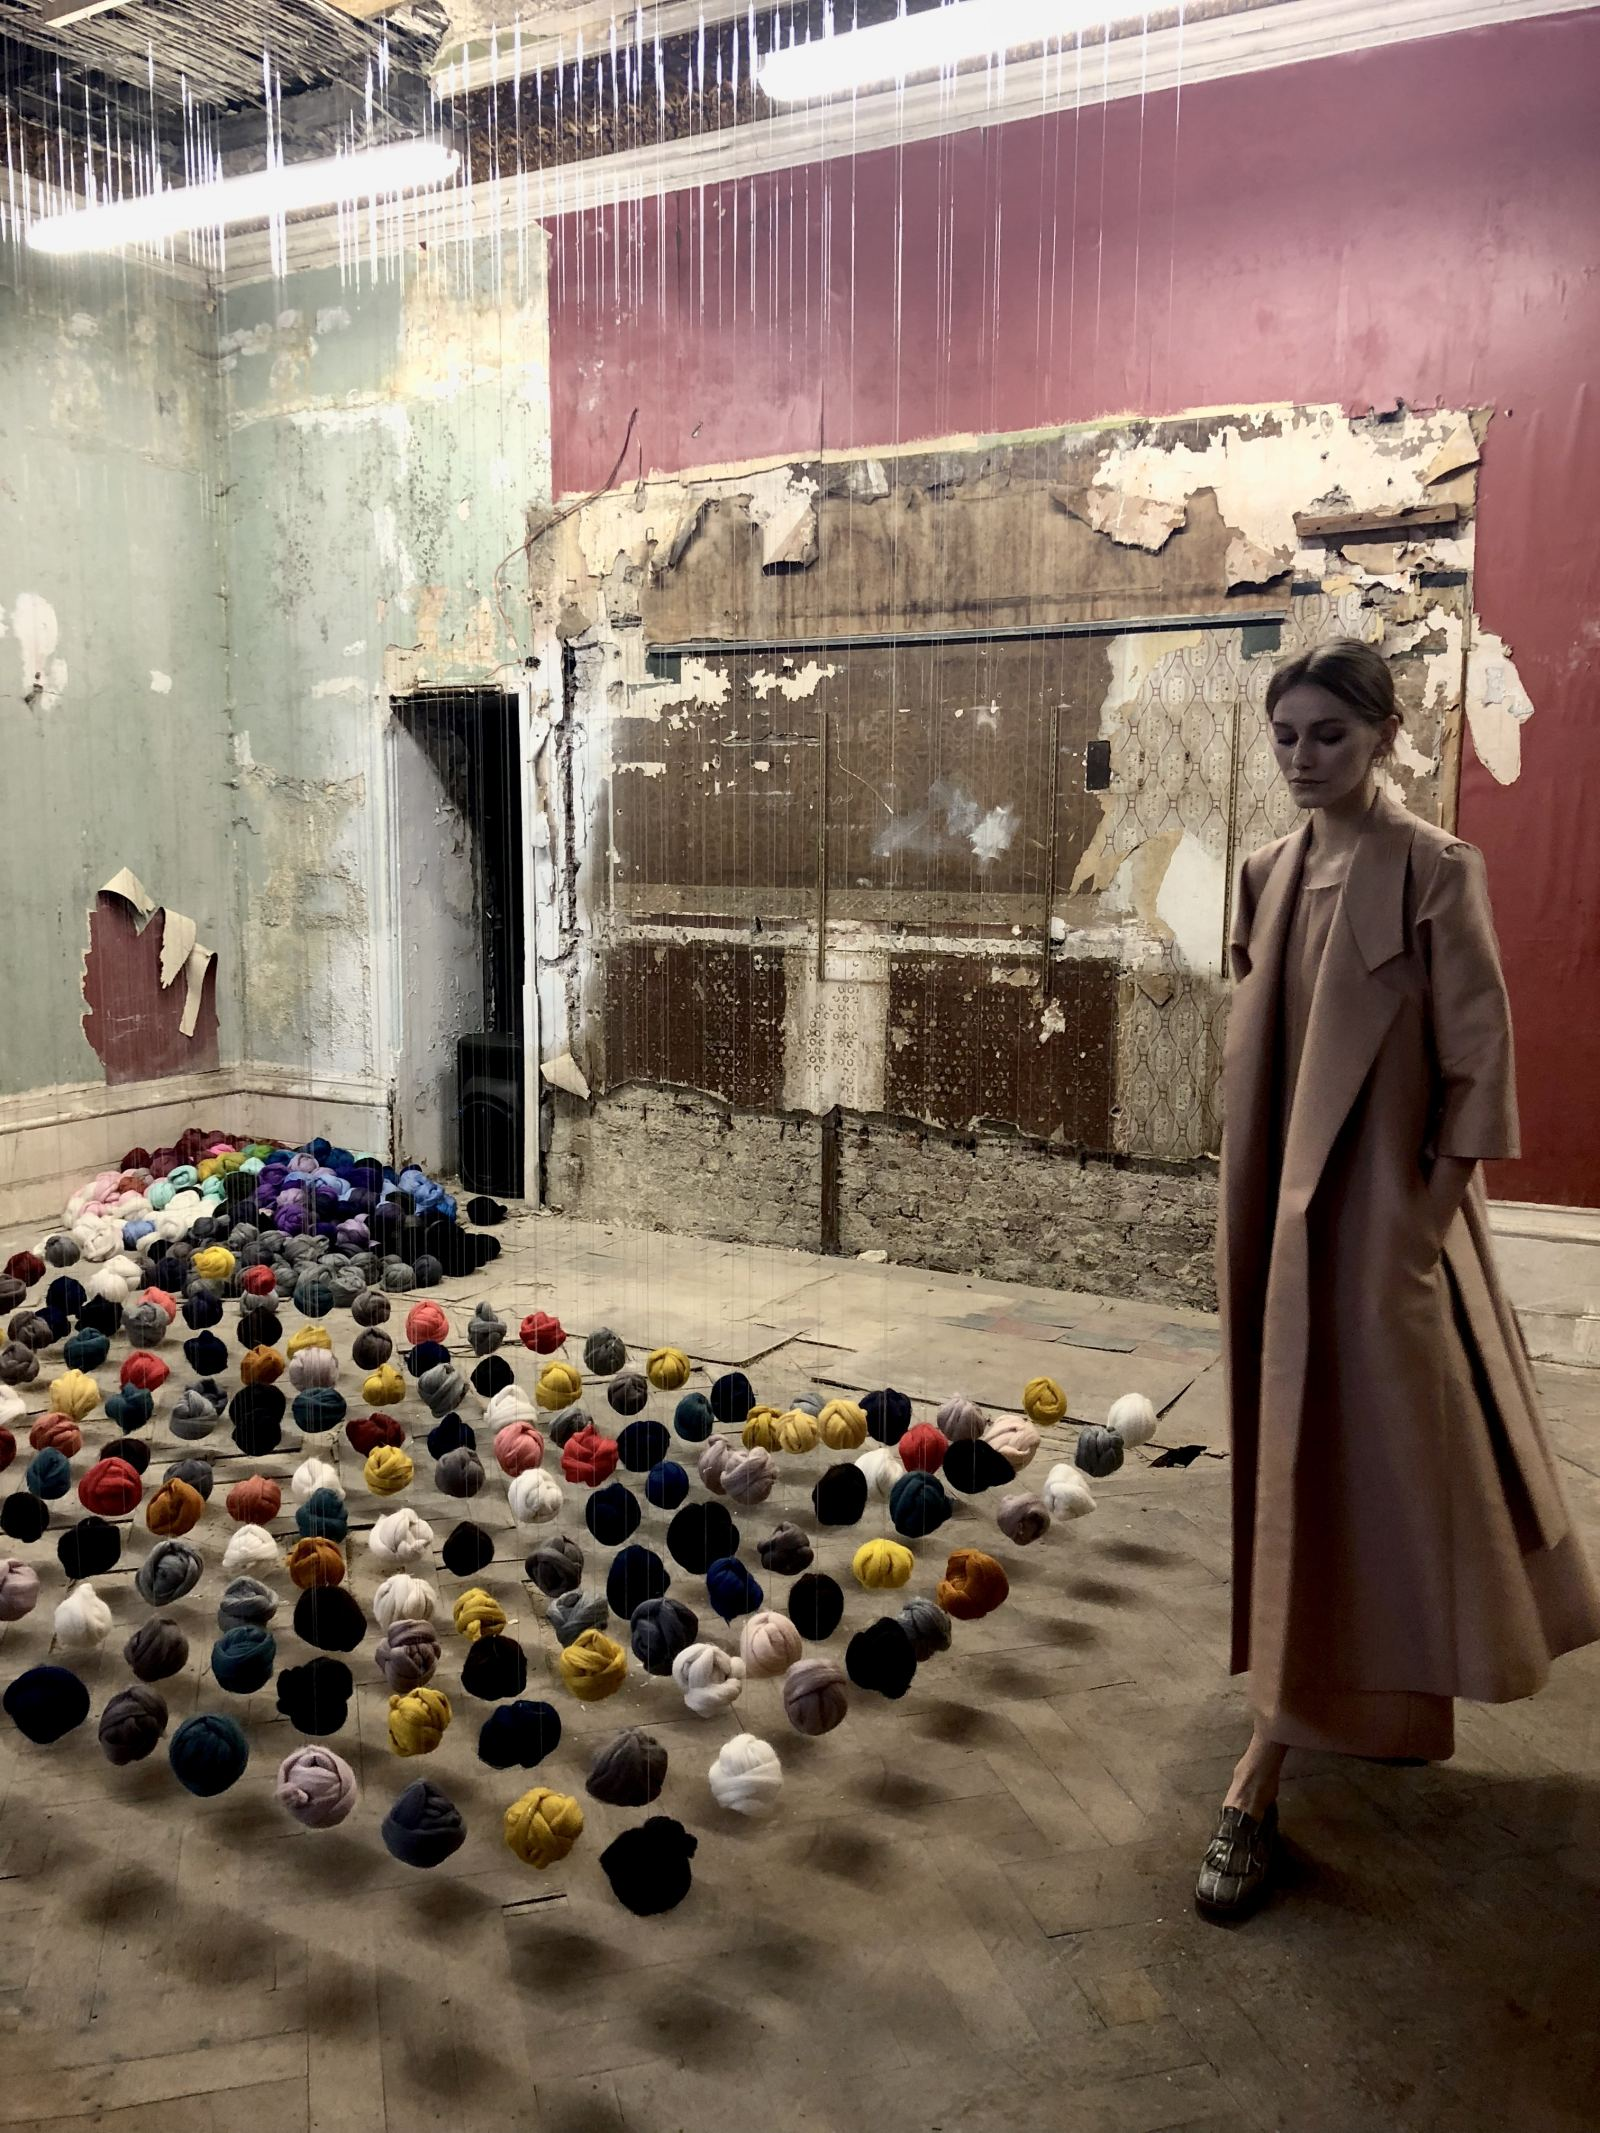 Merchant Archive FW18 A model in a pale pink coat in a room where wool balls are suspended from the ciling in a grid